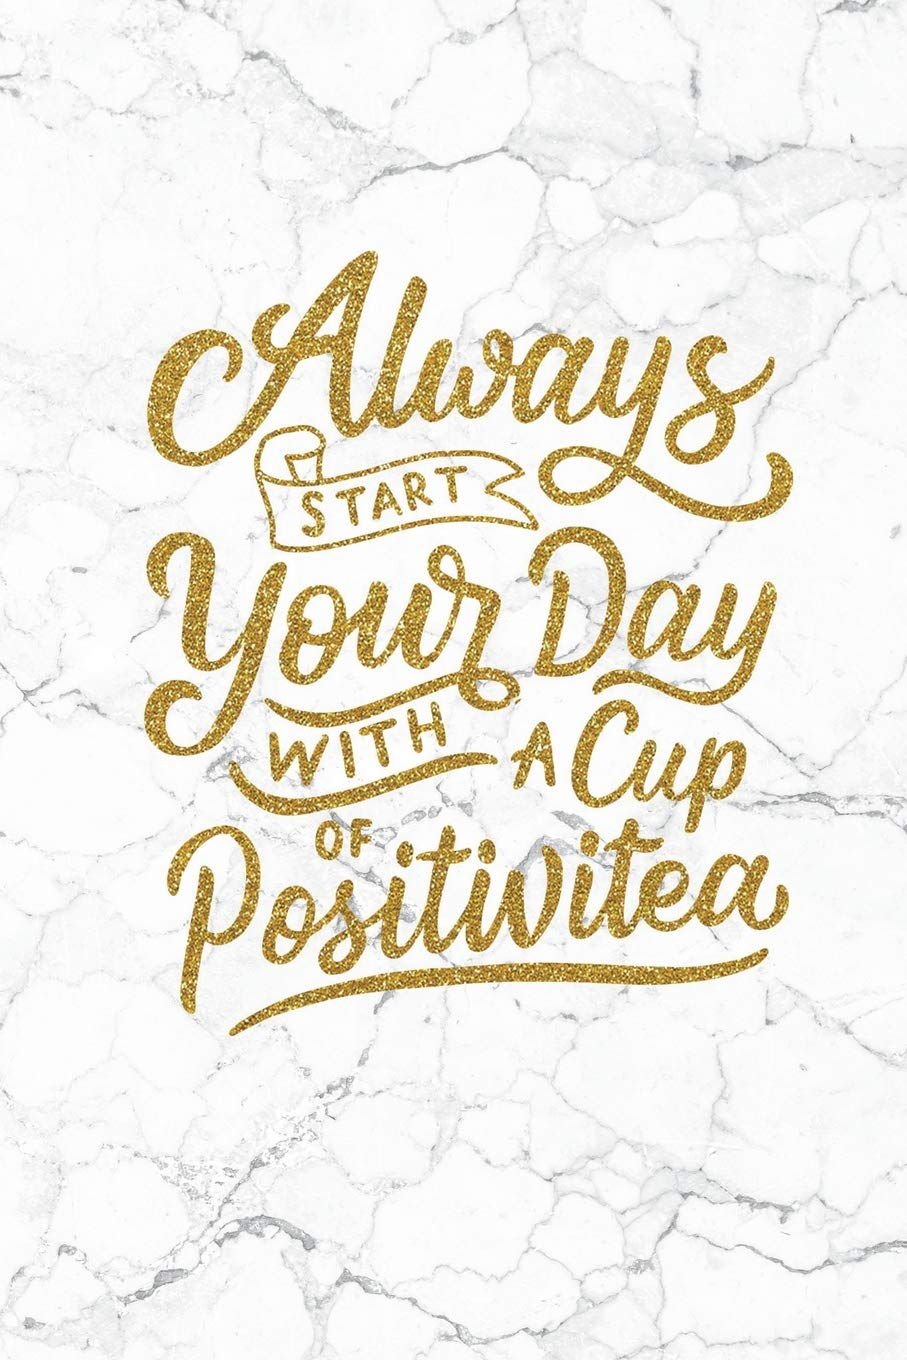 Always Start Your Day With A Cup Of Positivitea 100 Motivational Quotes Inside Inspirational Thoughts For Every Day Lined Notebook 100 Pages Gold White Marble Premium Soft Cover Rainny Harison 9781723054587